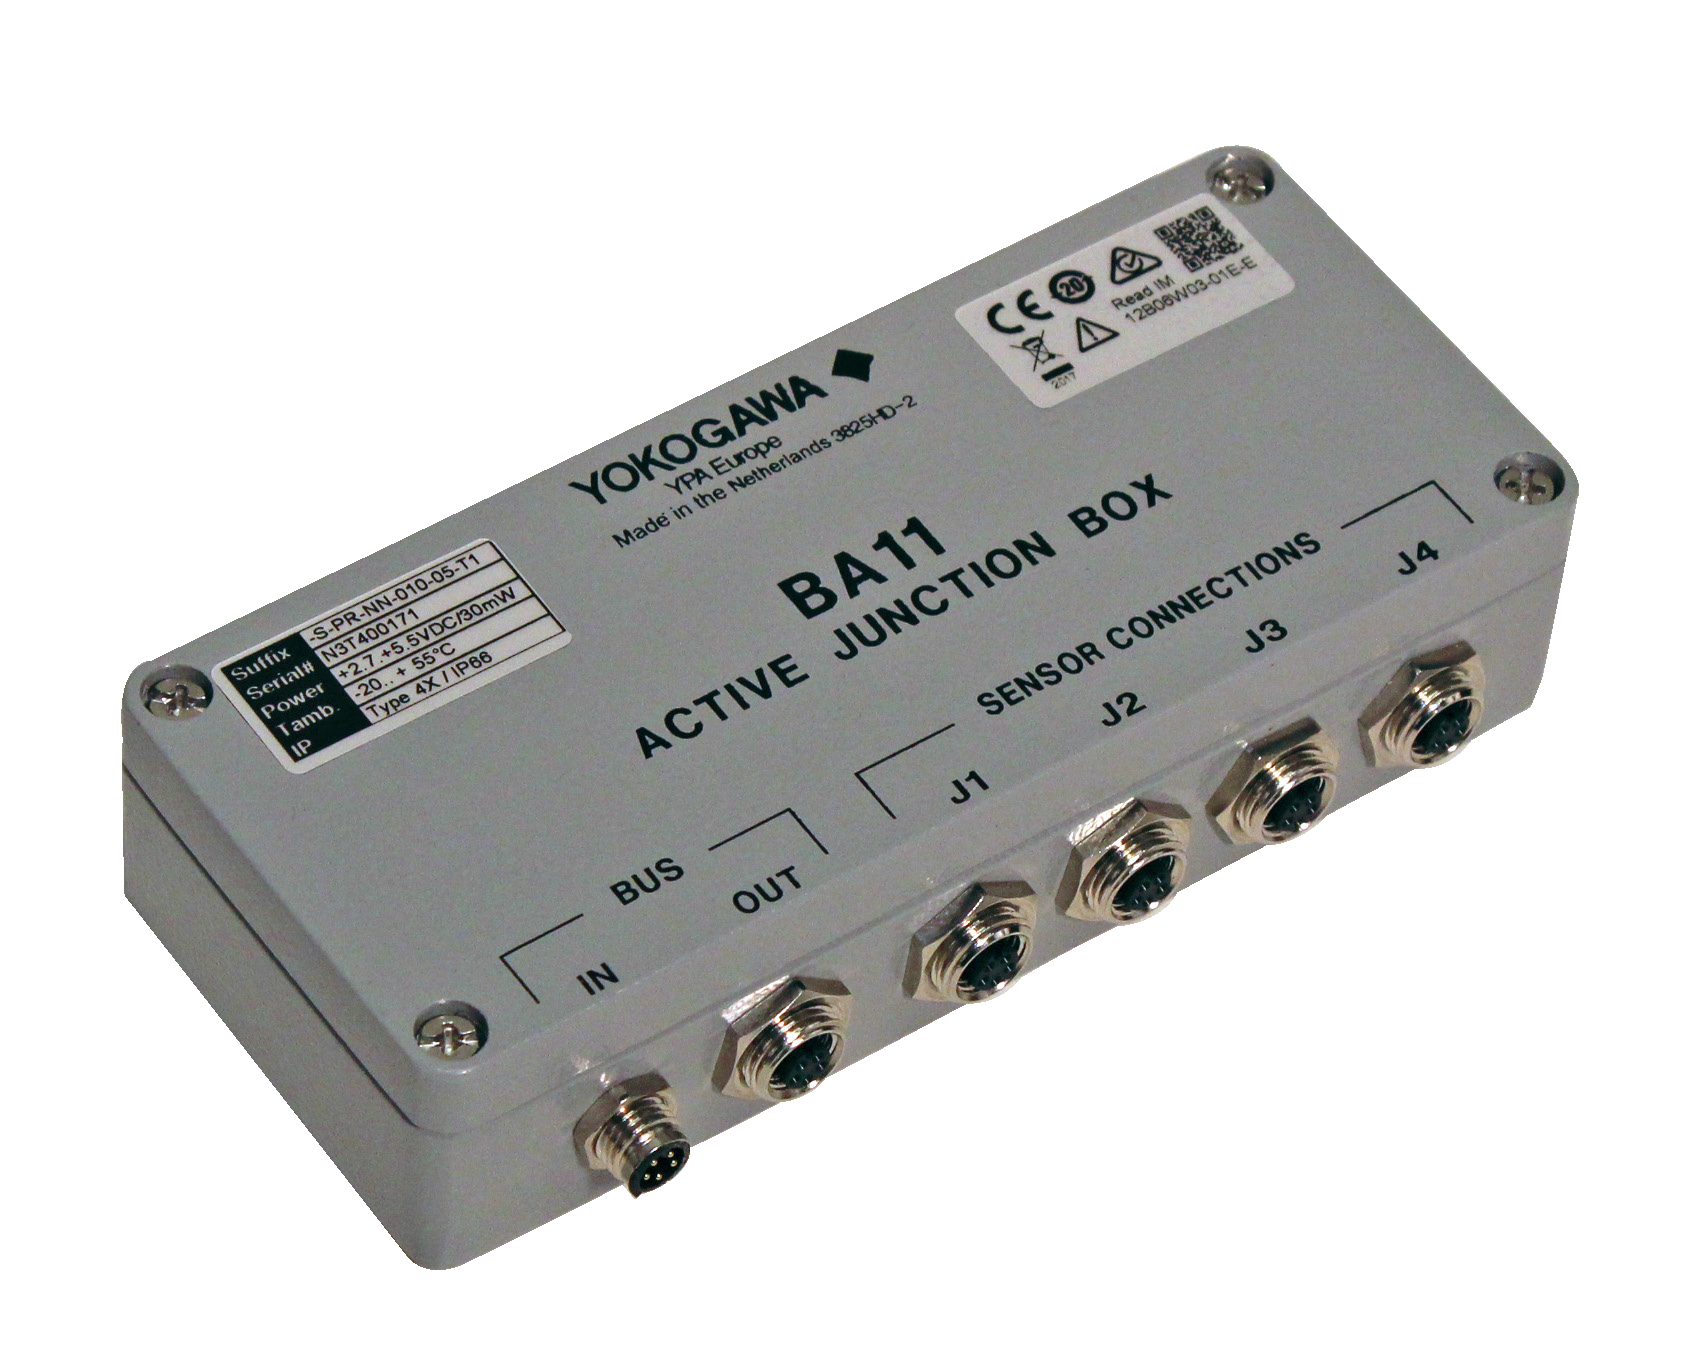 BA11 Active Junction Box